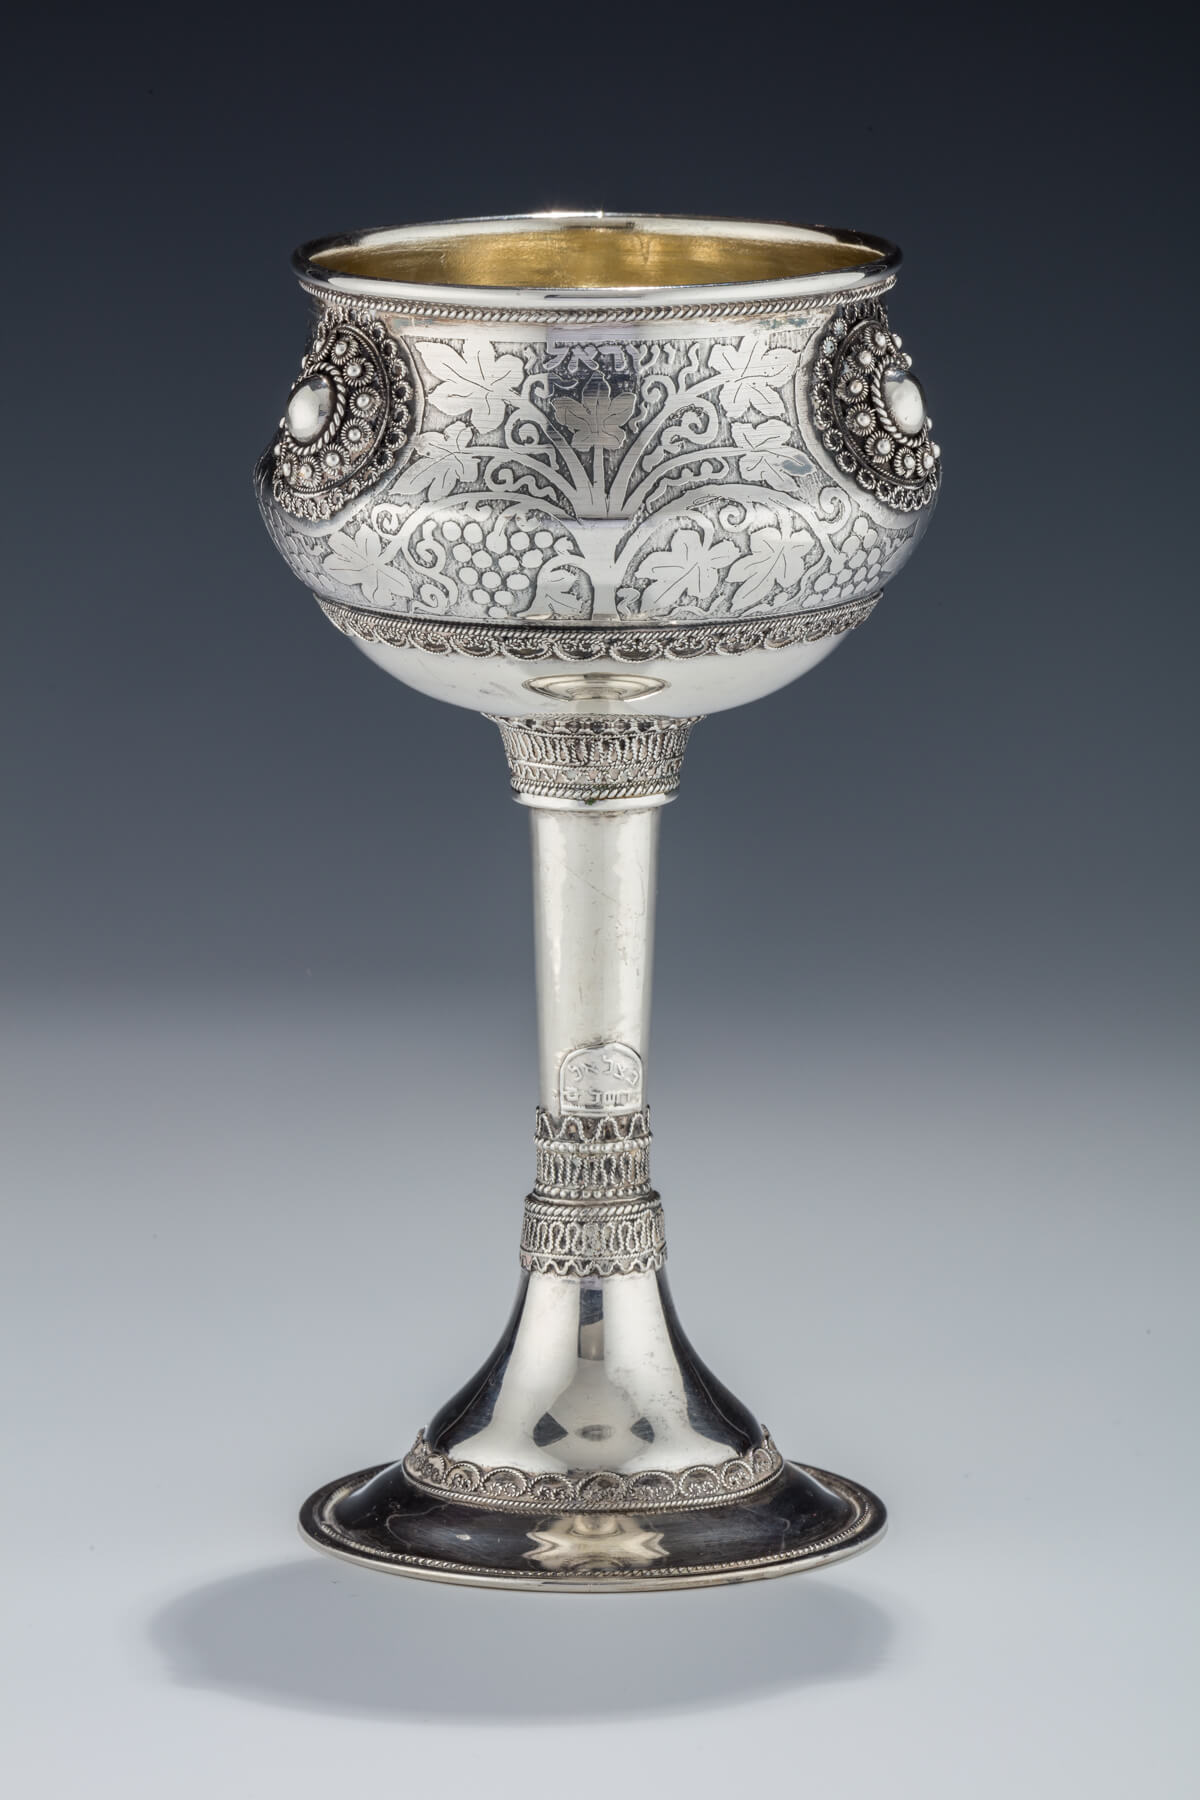 014. A Sterling Silver Kiddush Cup by Bezalel